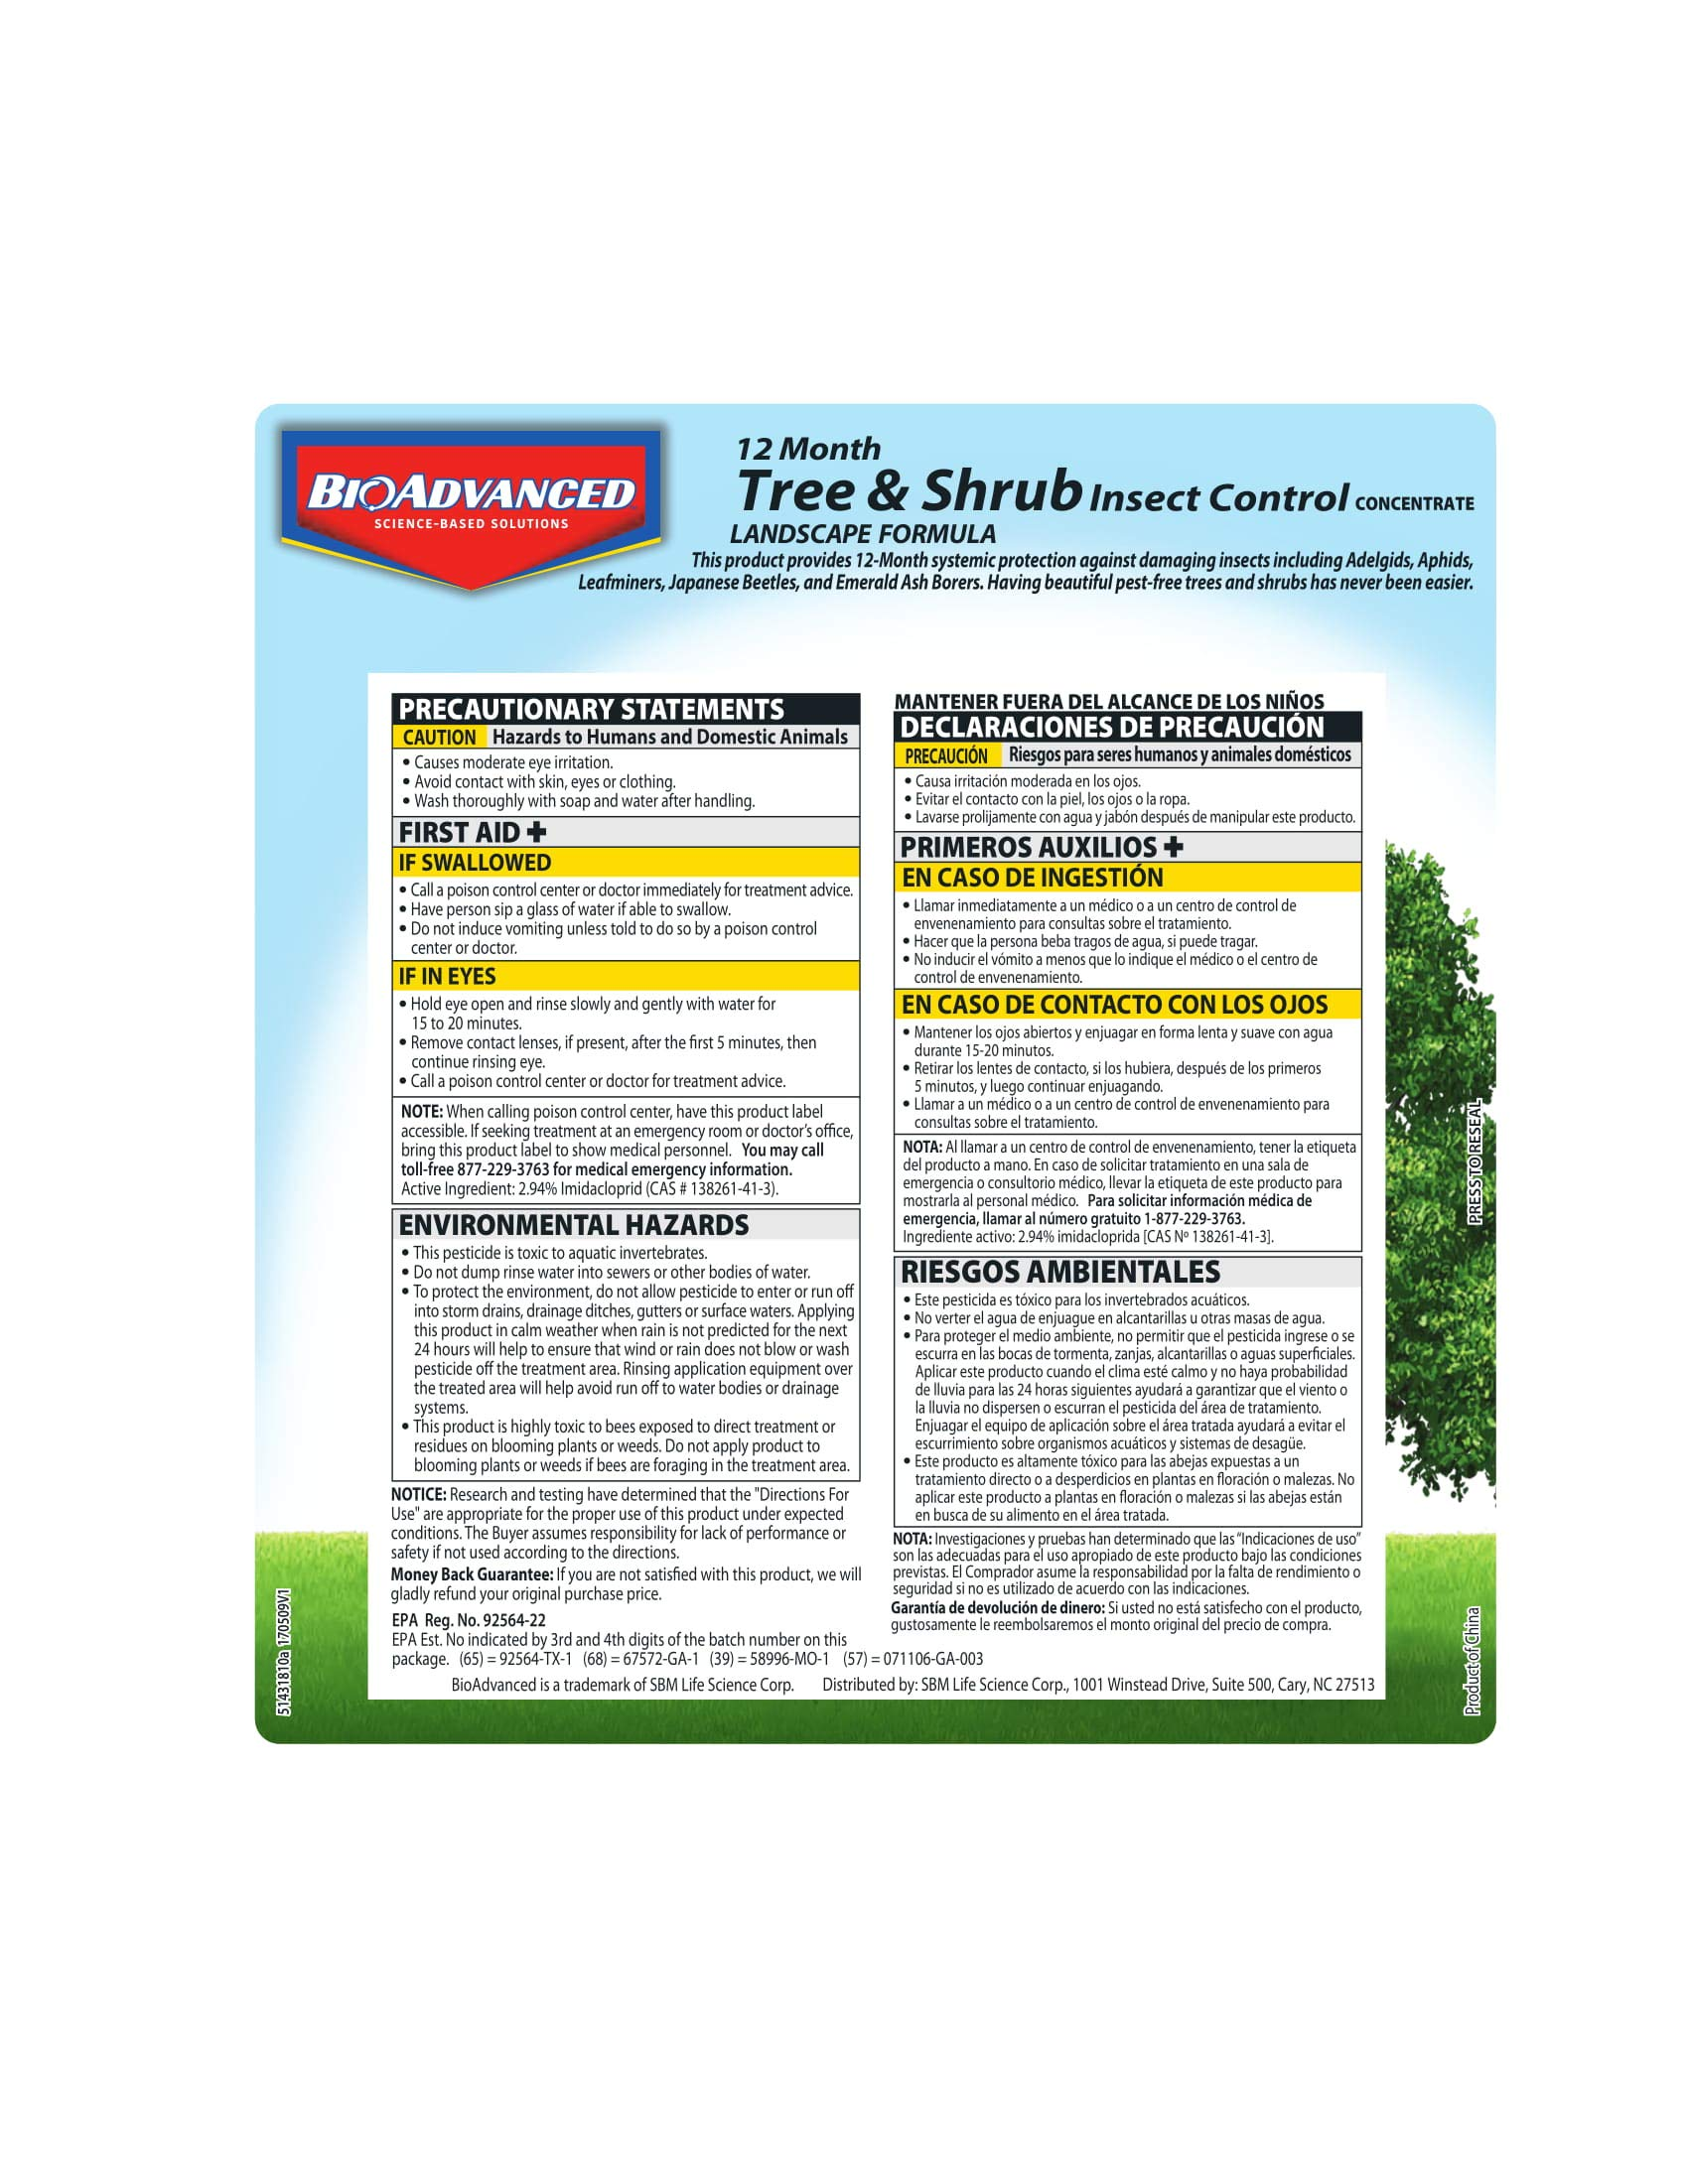 Bayer Advanced 701525 12 Month Tree and Shrub Insect Control Landscape Formula Concentrate, 1-Gallon by BioAdvanced (Image #6)